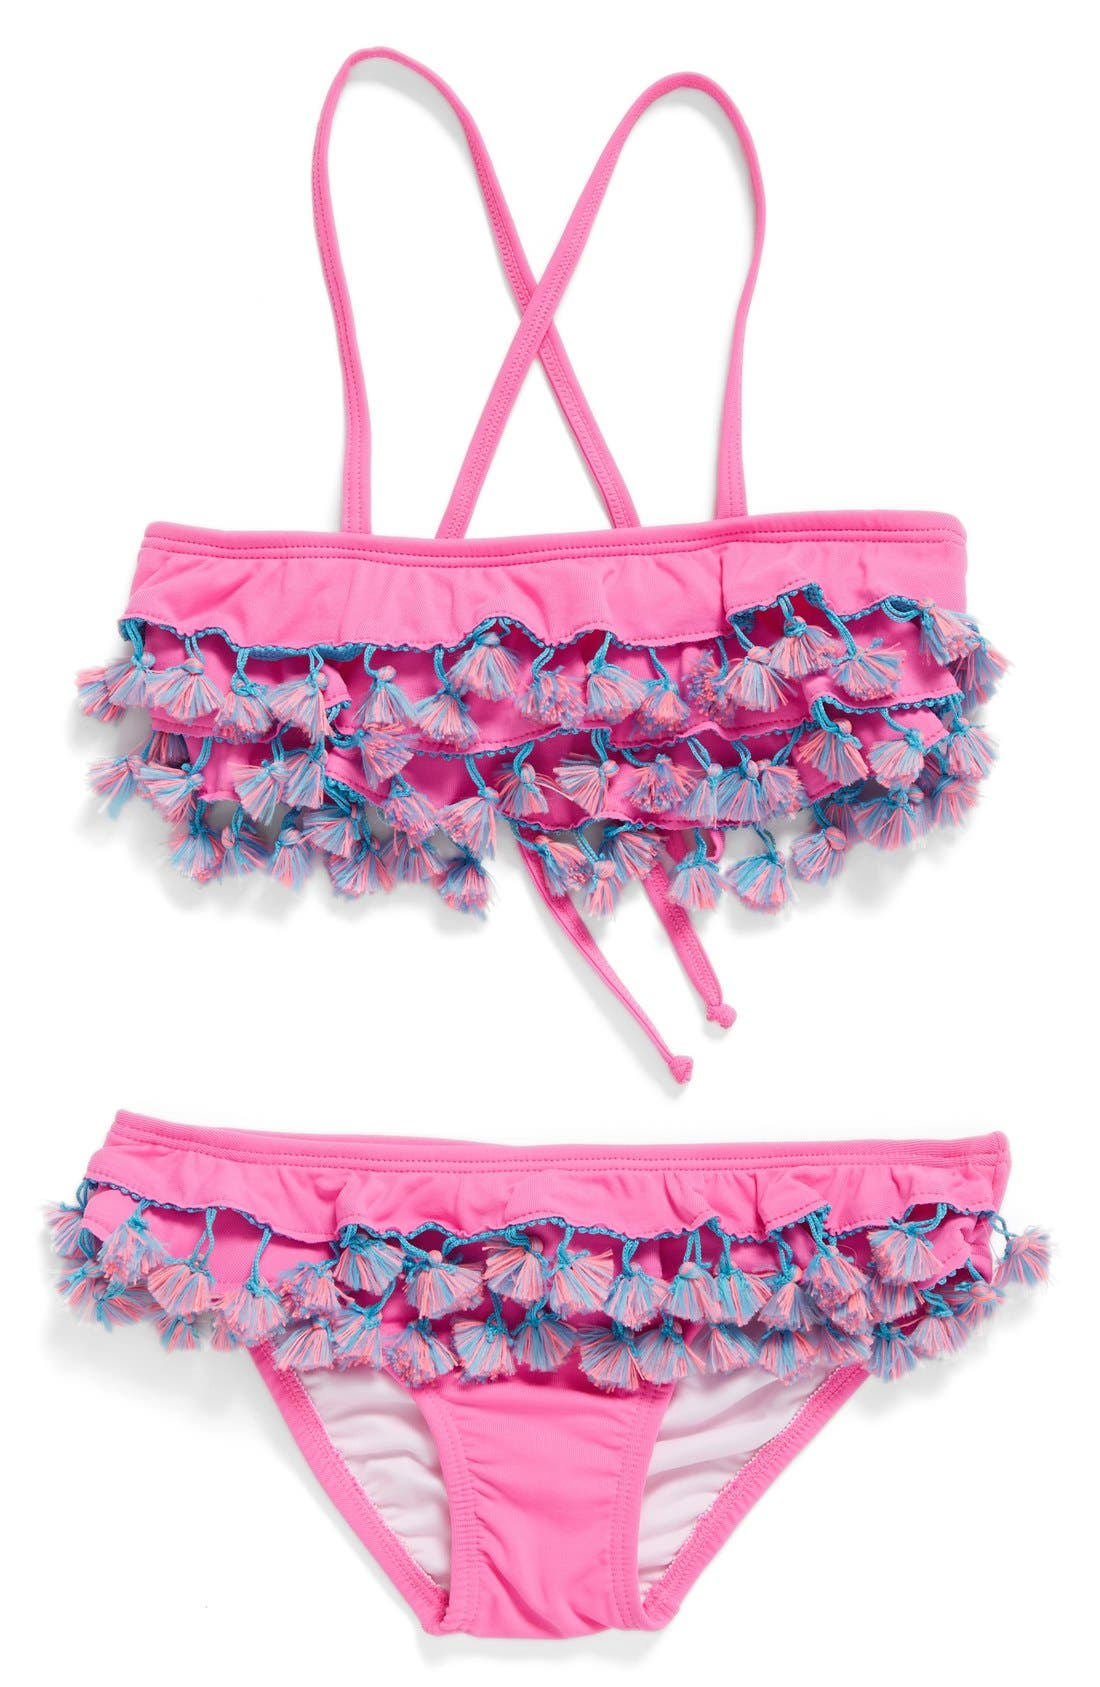 Alternate Image 1 Selected - PilyQ Tassel Ruffle Two-Piece Swimsuit (Big Girls)